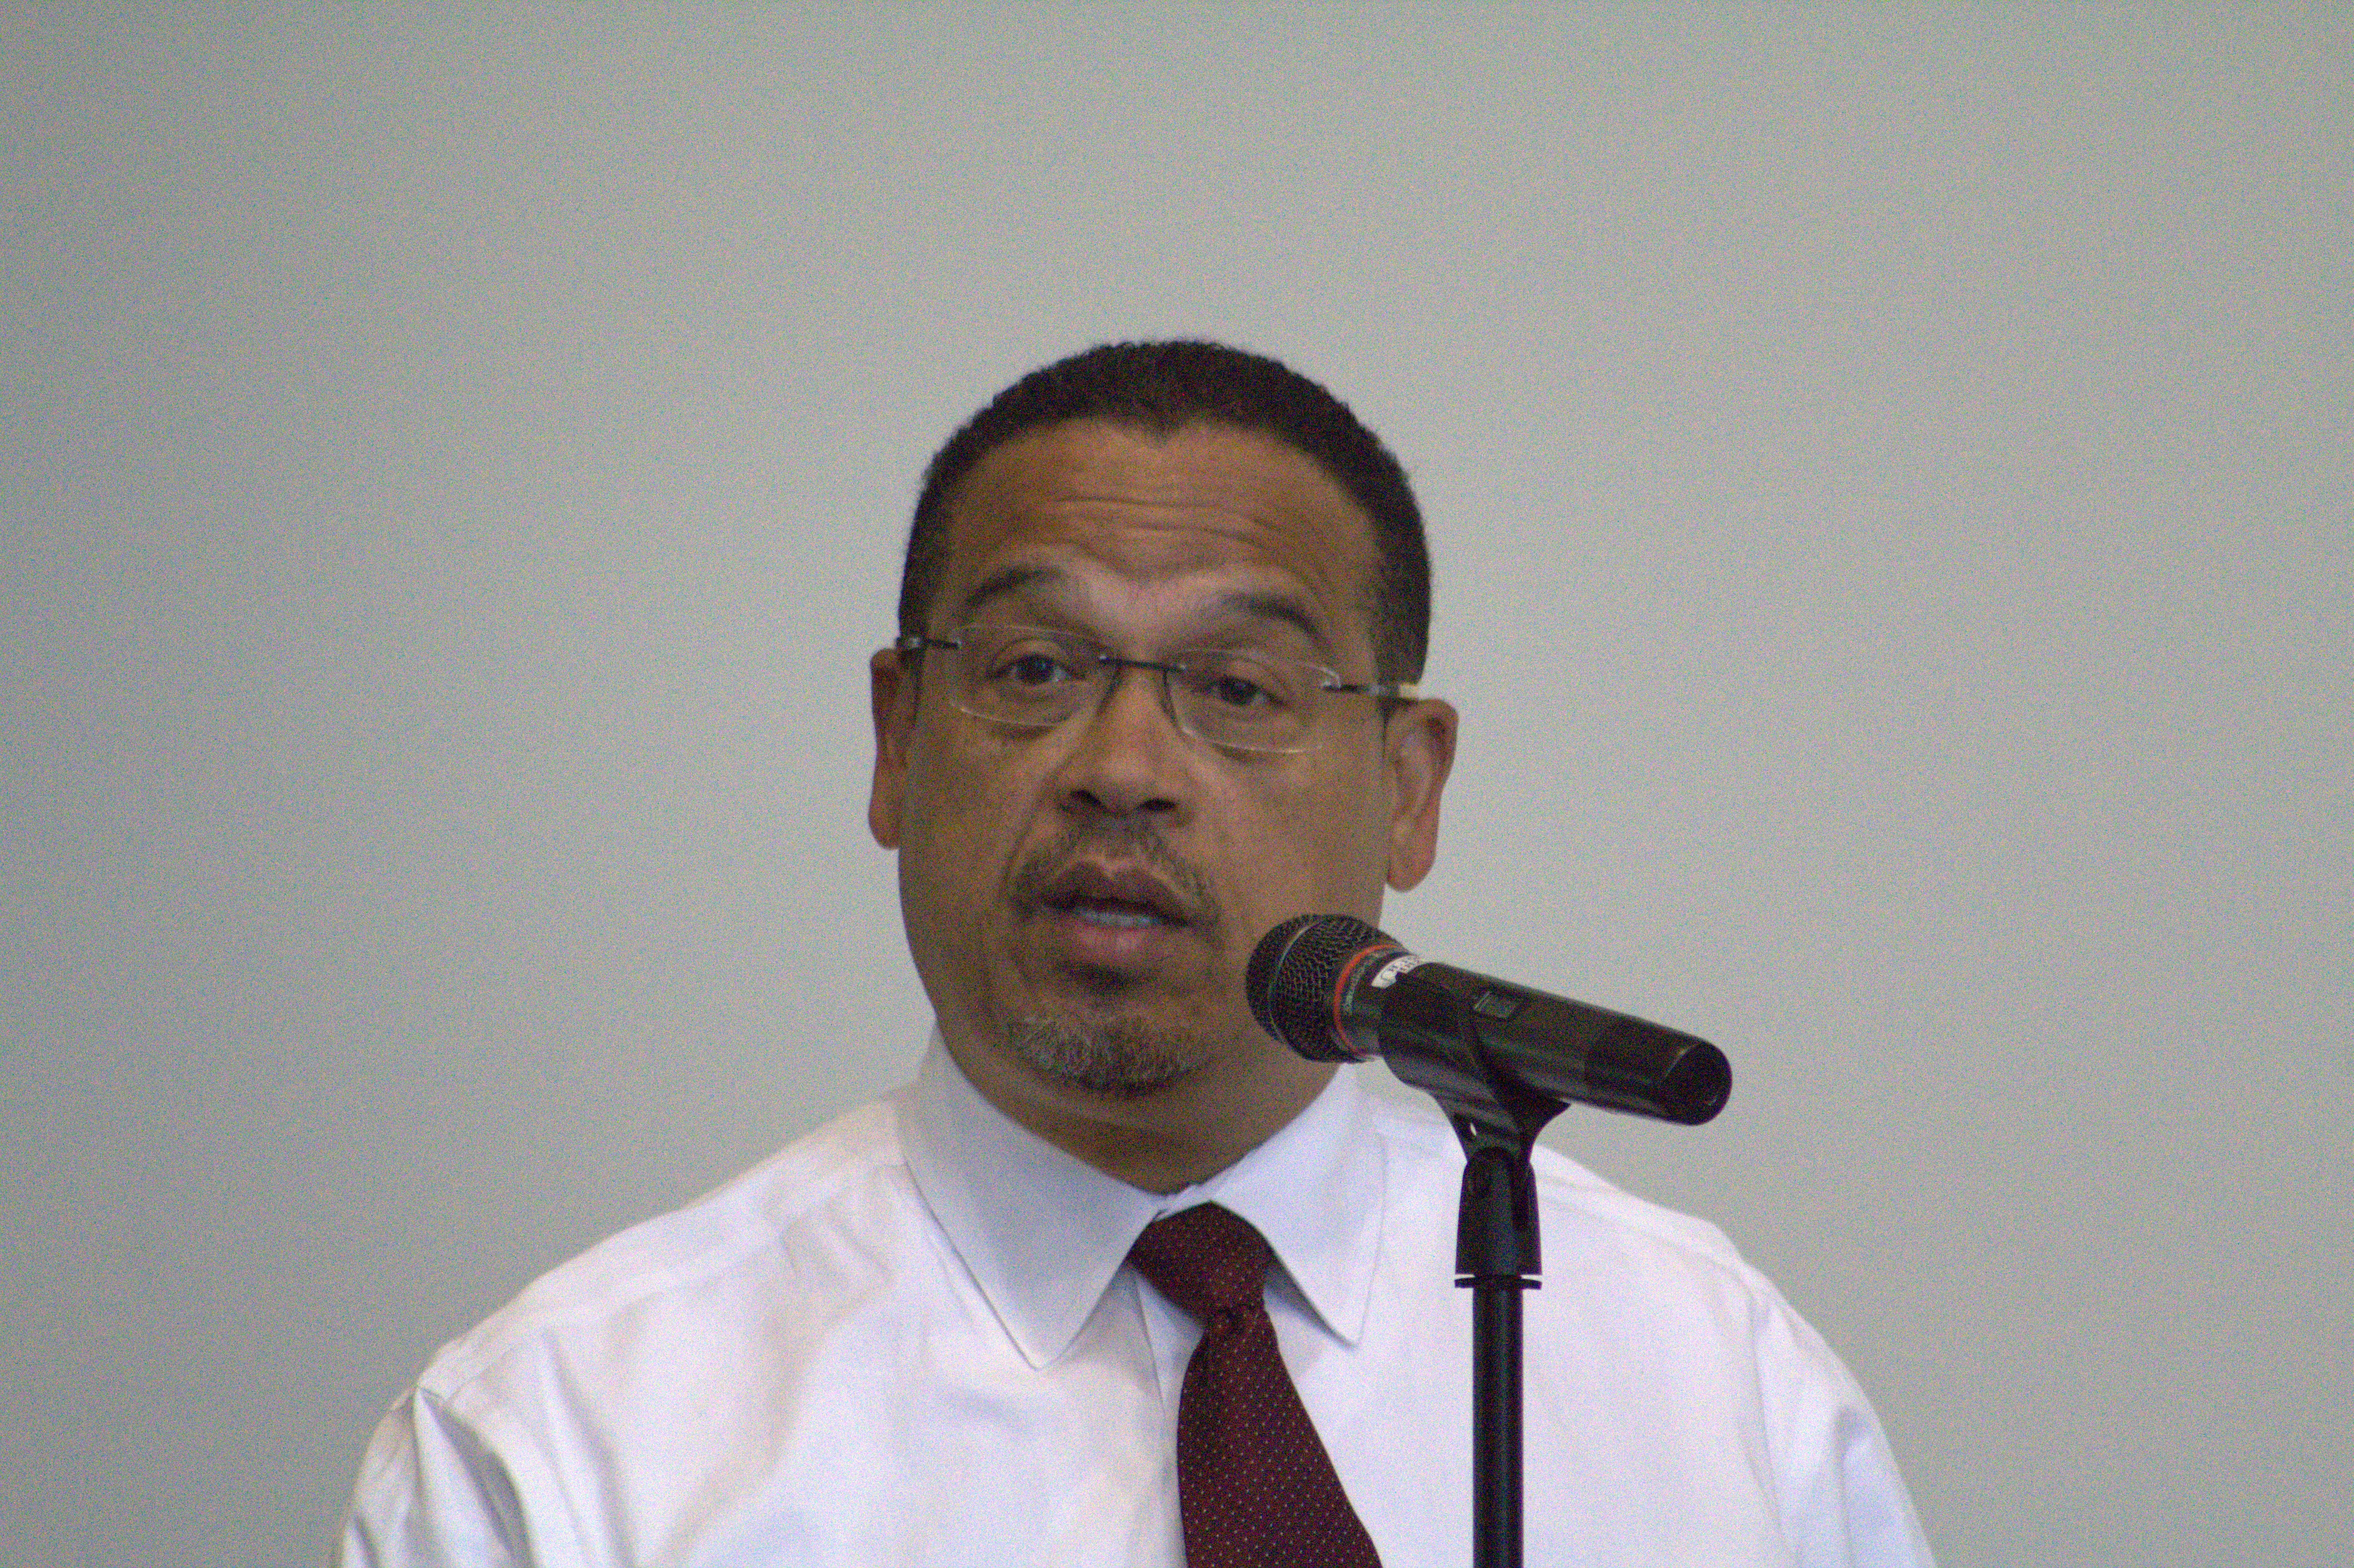 Rep. Keith Ellison answering a question during a Q&A sessions at MCTC. Photo by Mark Wasson